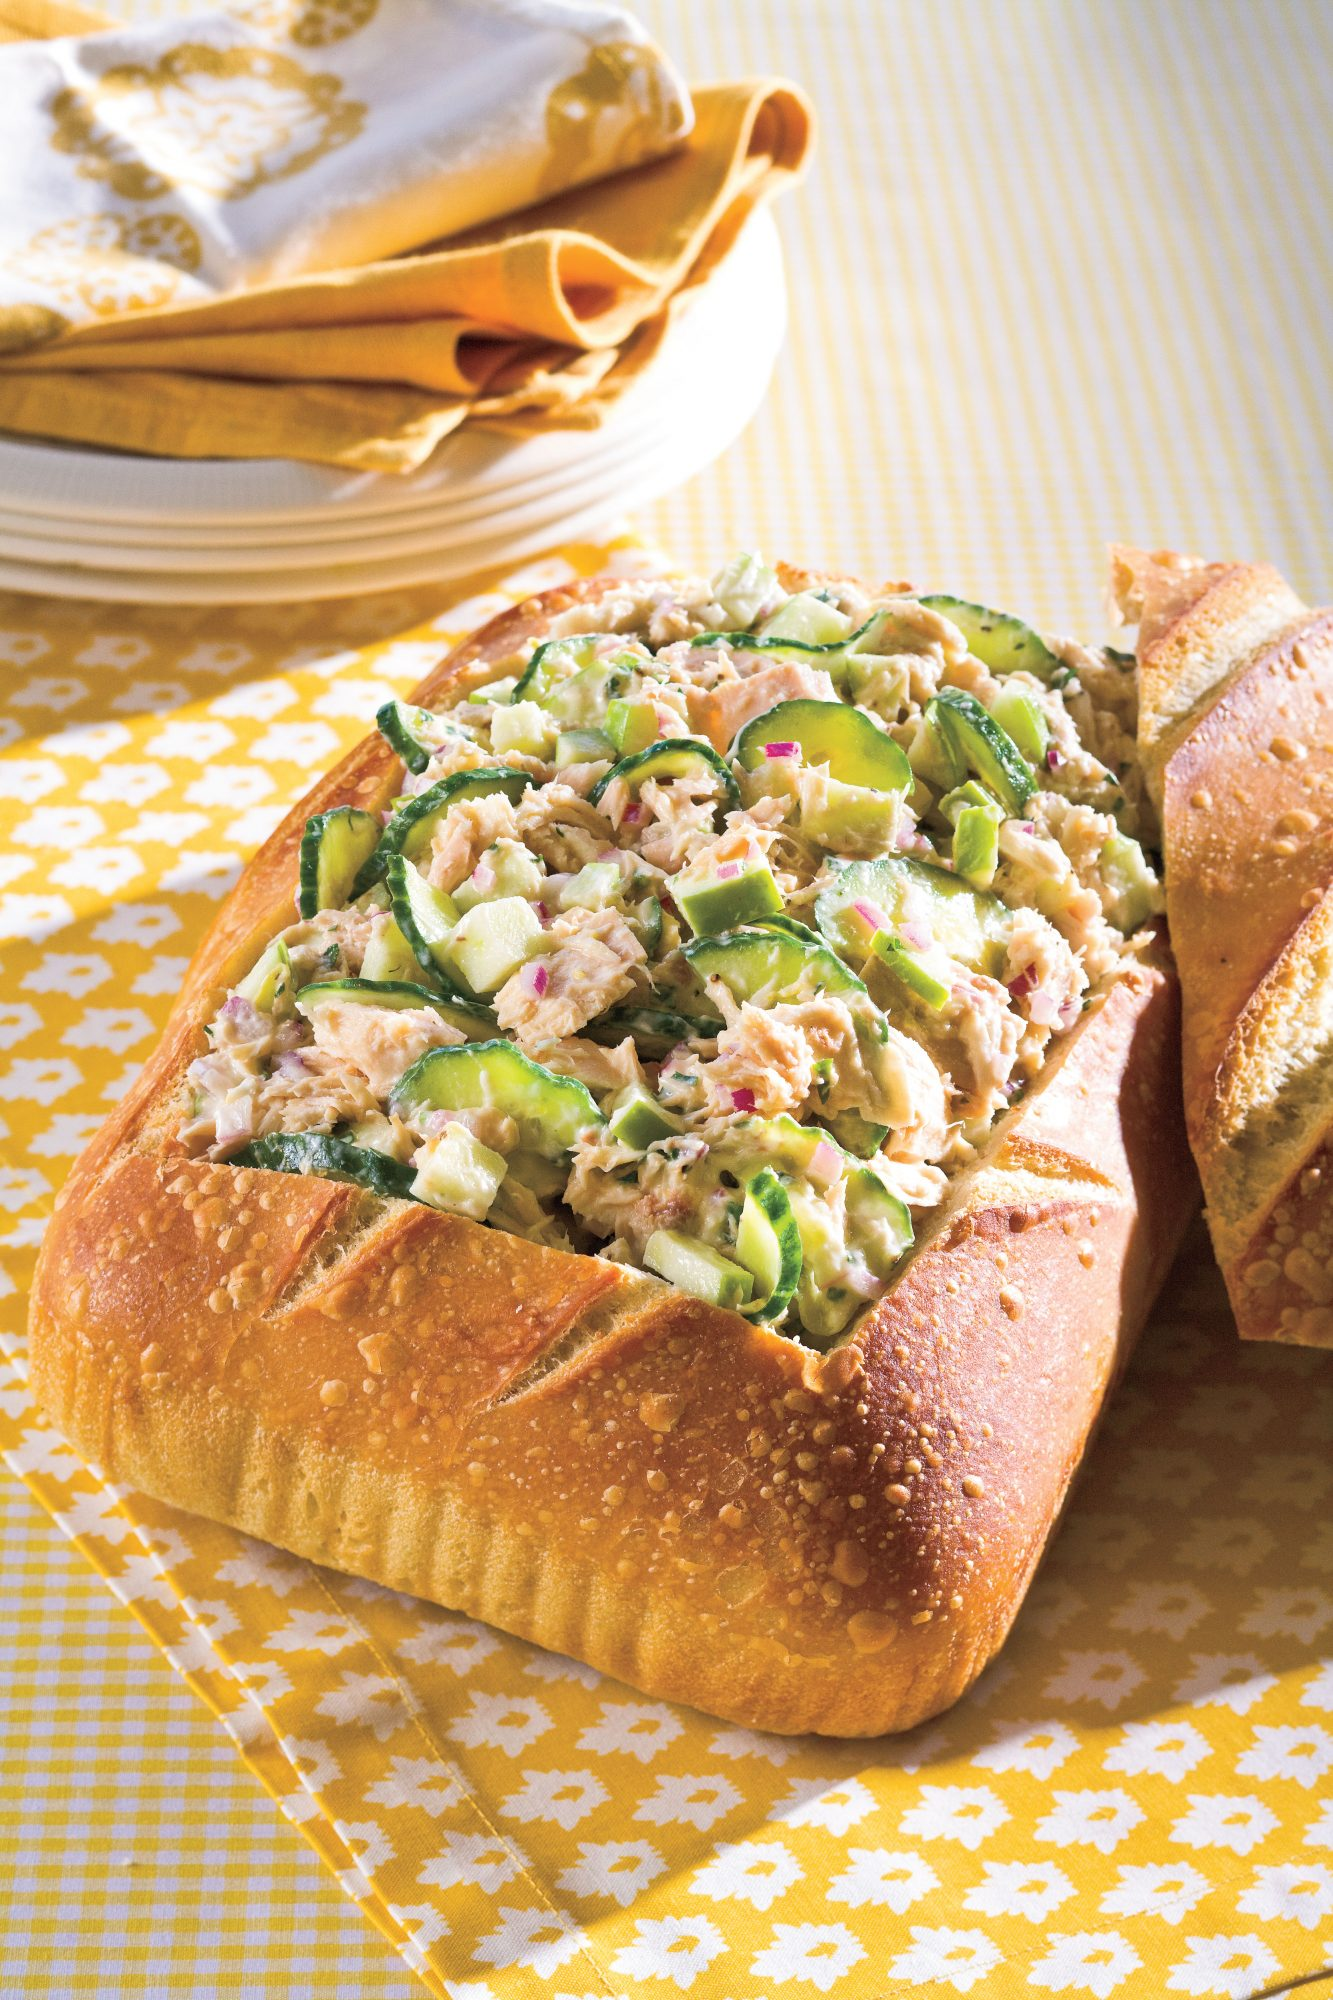 Easy, Healthy Seafood Recipes: Tuna Salad With Lemon Aïoli